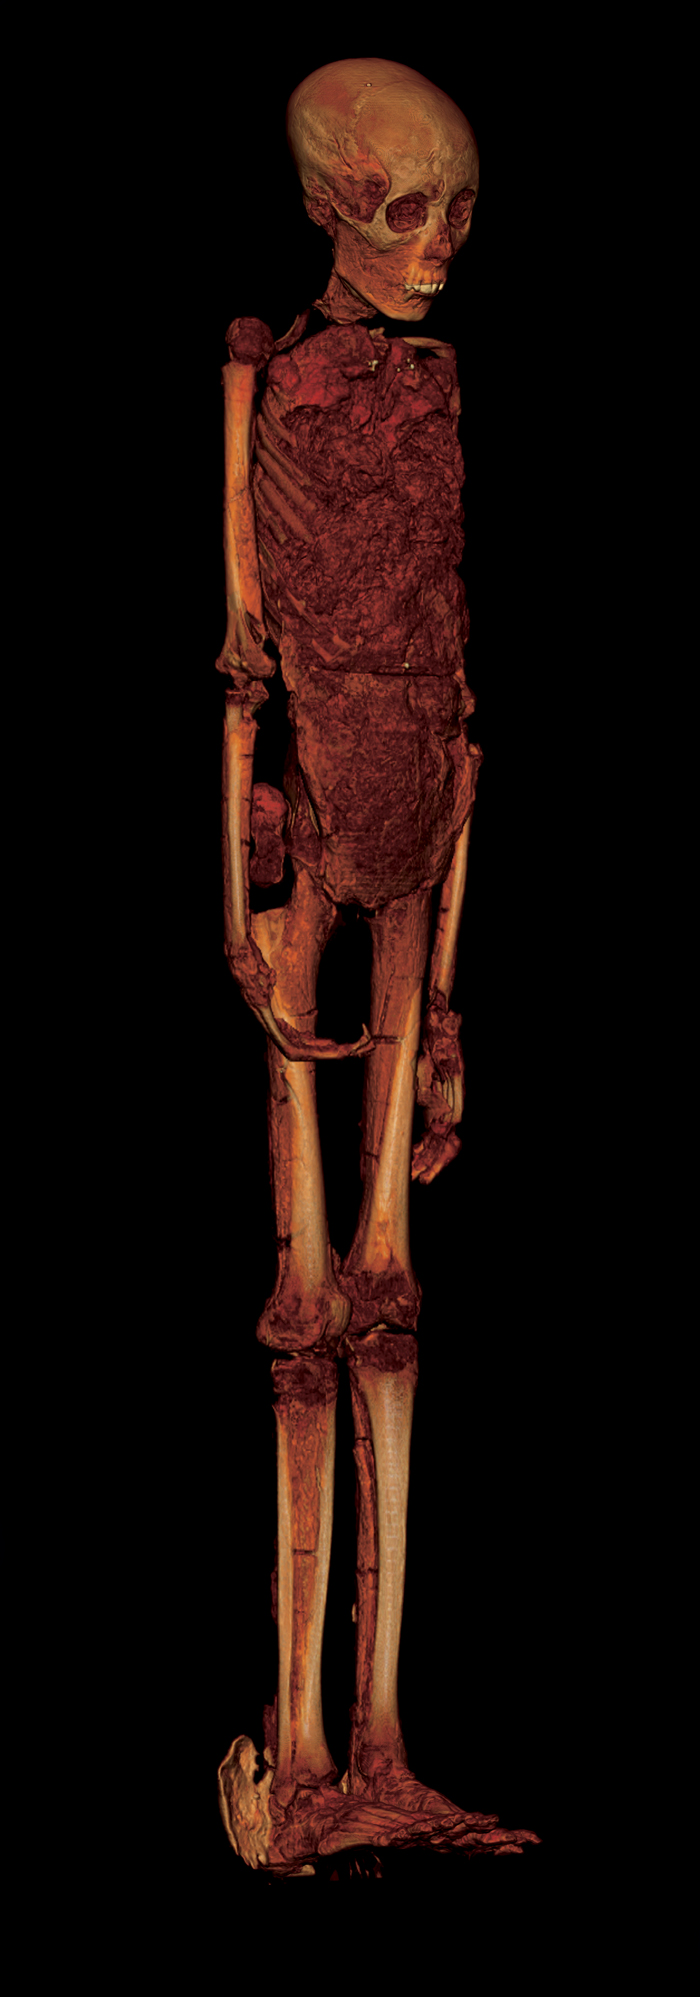 This CT scan reveals the deformed foot, broken knee, and elongated skull of King Tut. Photograph courtesy the Supreme Council of Antiquities, Egypt, and National Geographic